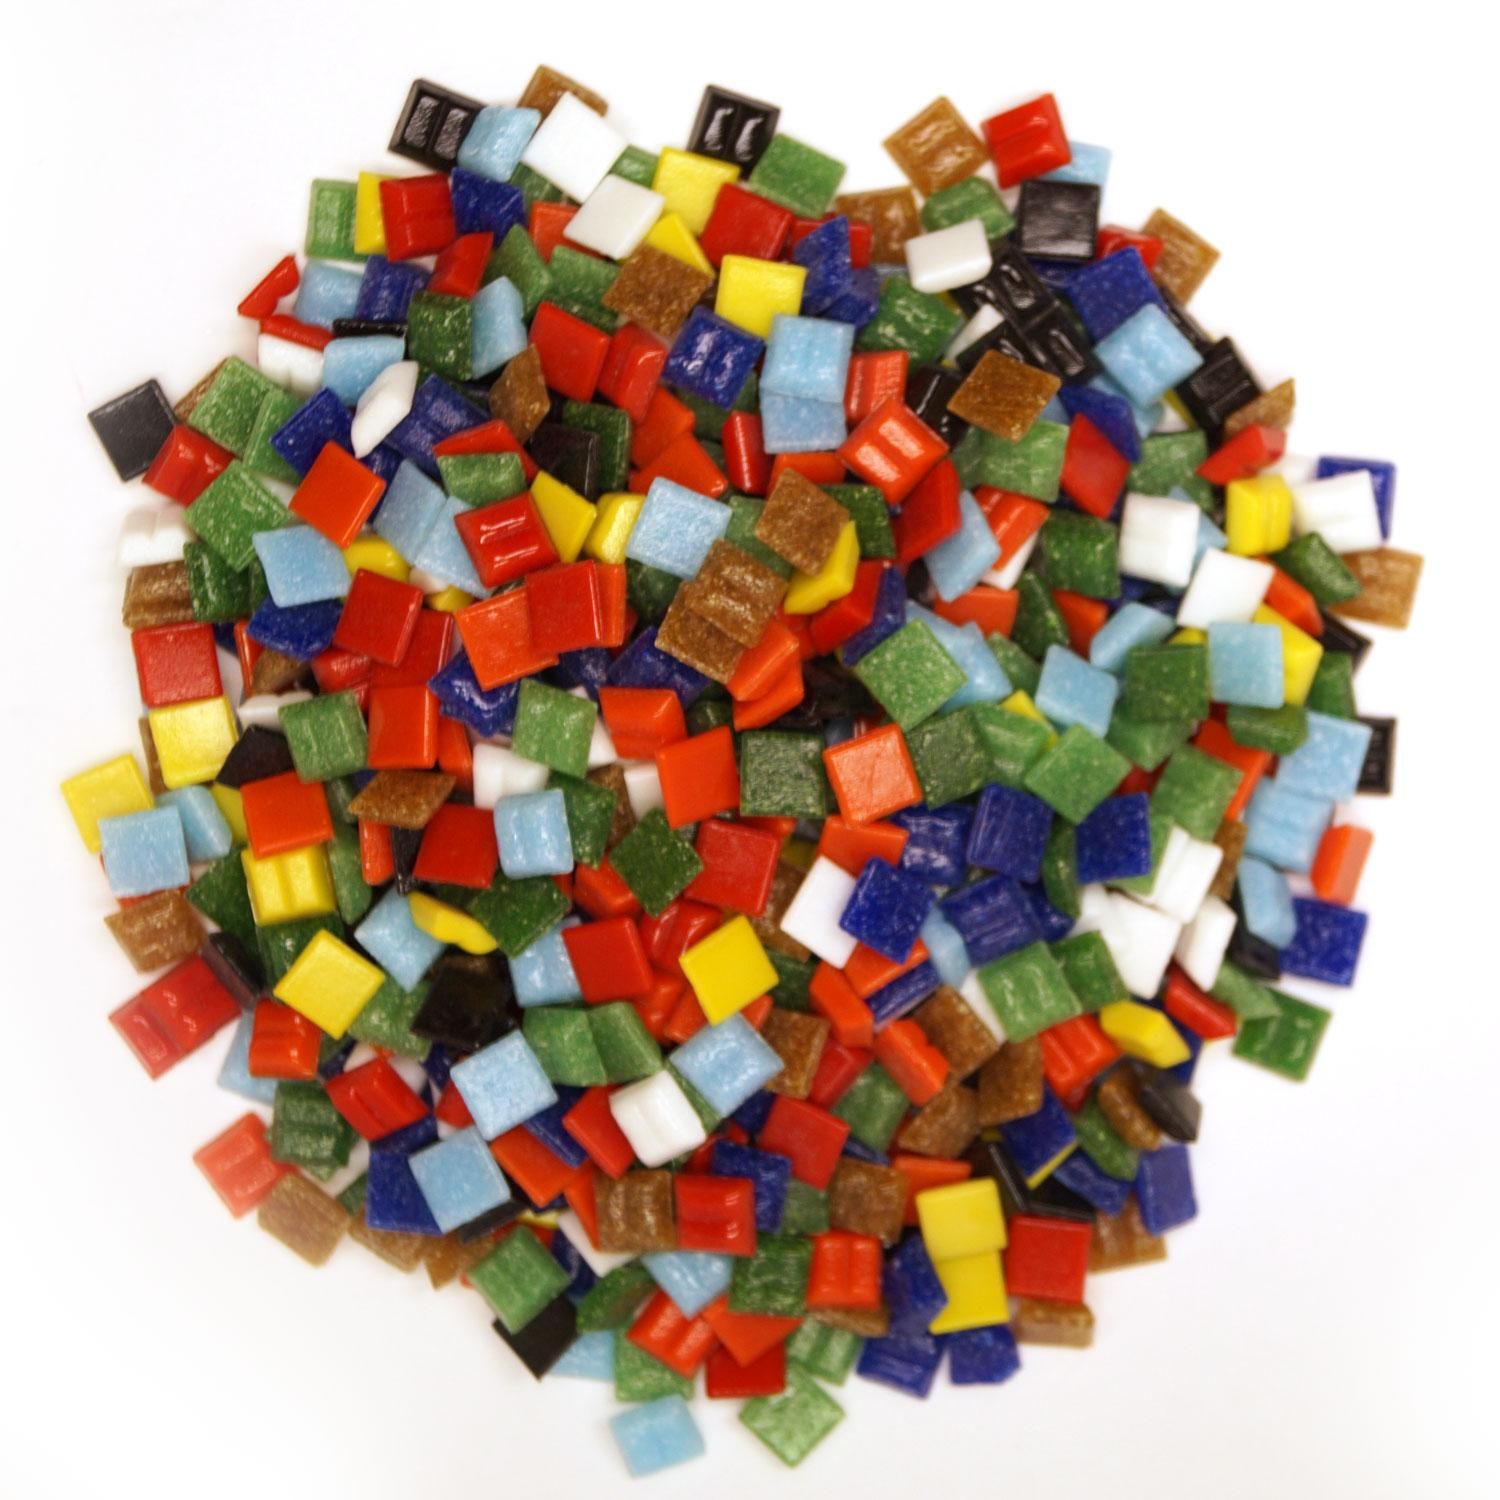 3/8 Venetian Glass Tile Value Assortment - 1 lb